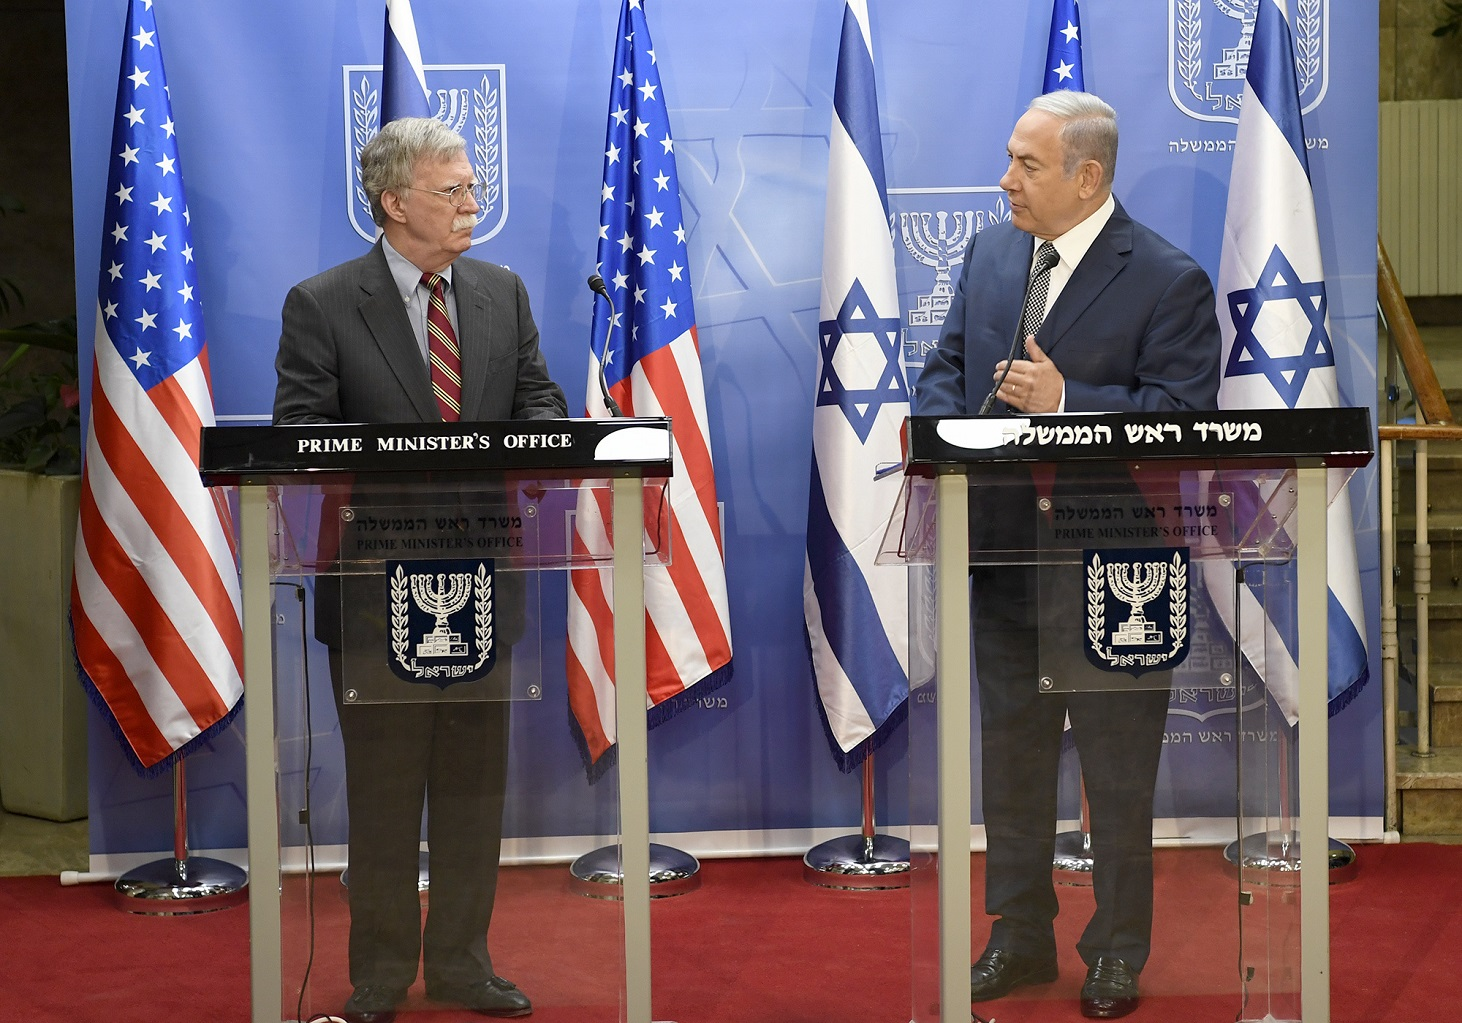 Visit of the U.S. National Security Advisor Ambassador John Bolton Jerusalem, Israel Sunday, August 19 – Wednesday, August 22 Statements and Meeting with Prime Minister Benjamin Netanyahu